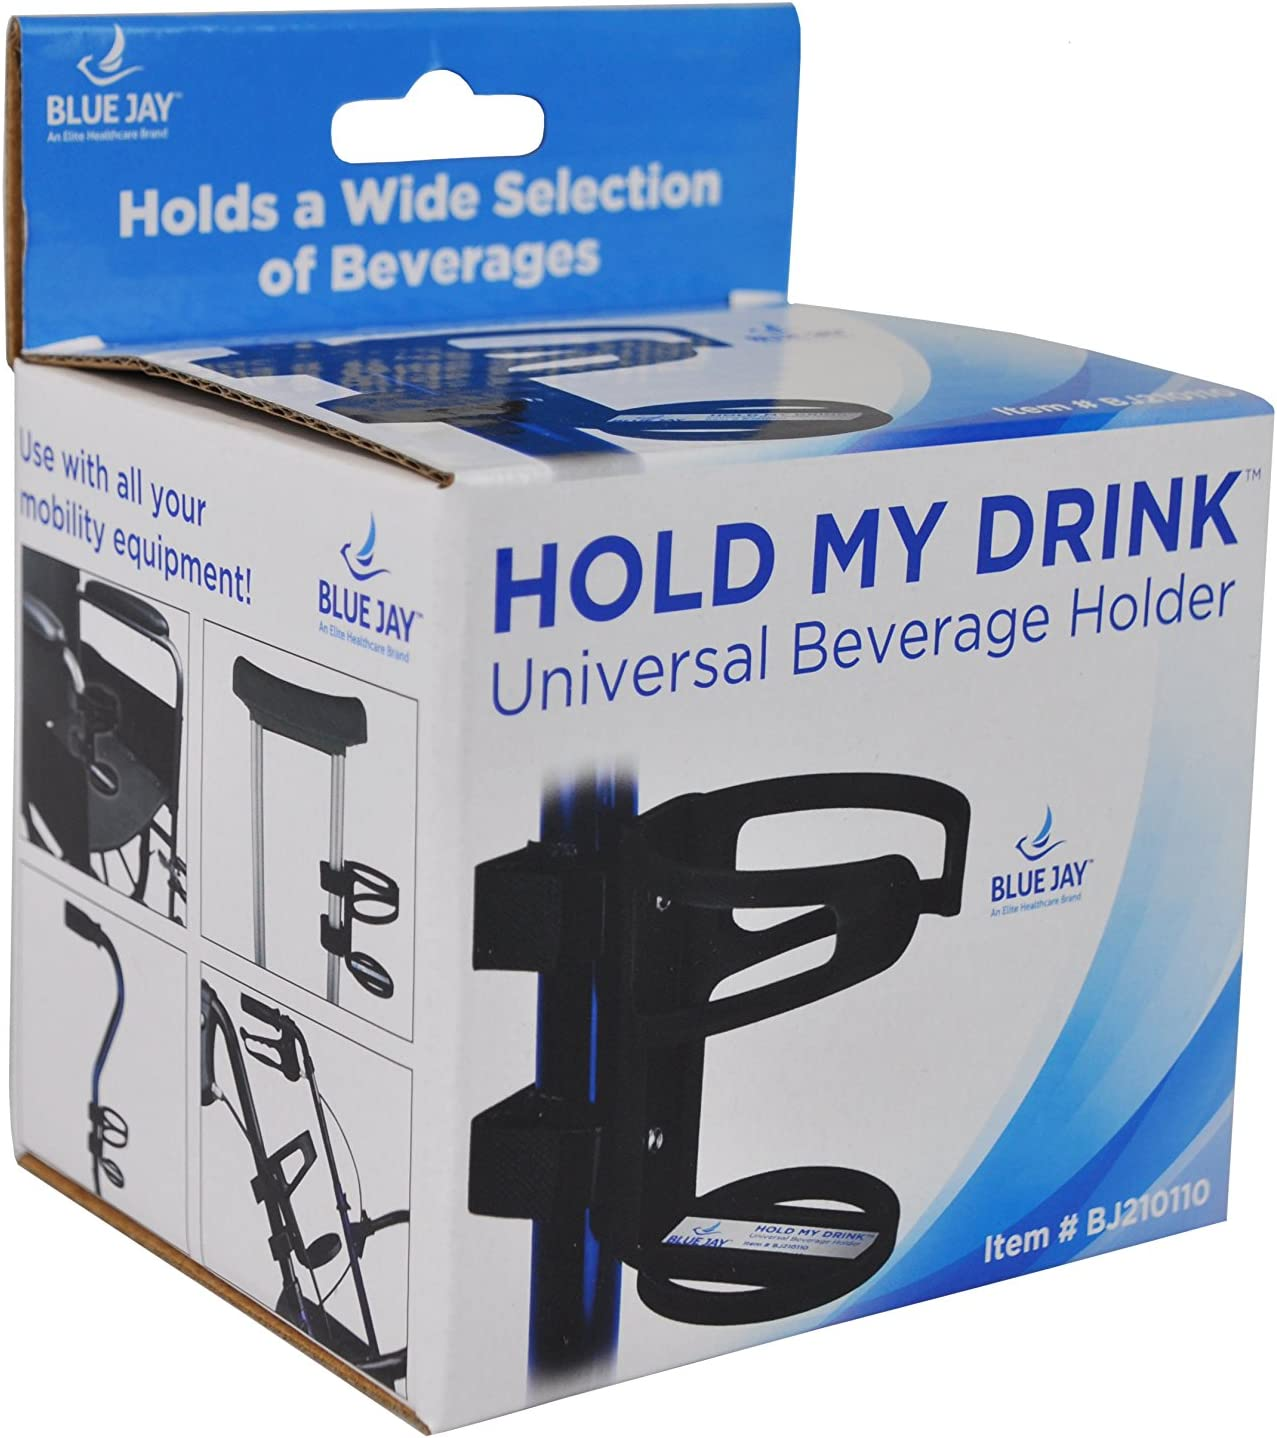 Blue Jay Hold My Drink Universal Beverage Holder – Use with All Your Mobile Equipment, Holds Beverages, Easy, Attach and Adjust, Black, Non-Slip Strip, Flexible Cup Holder